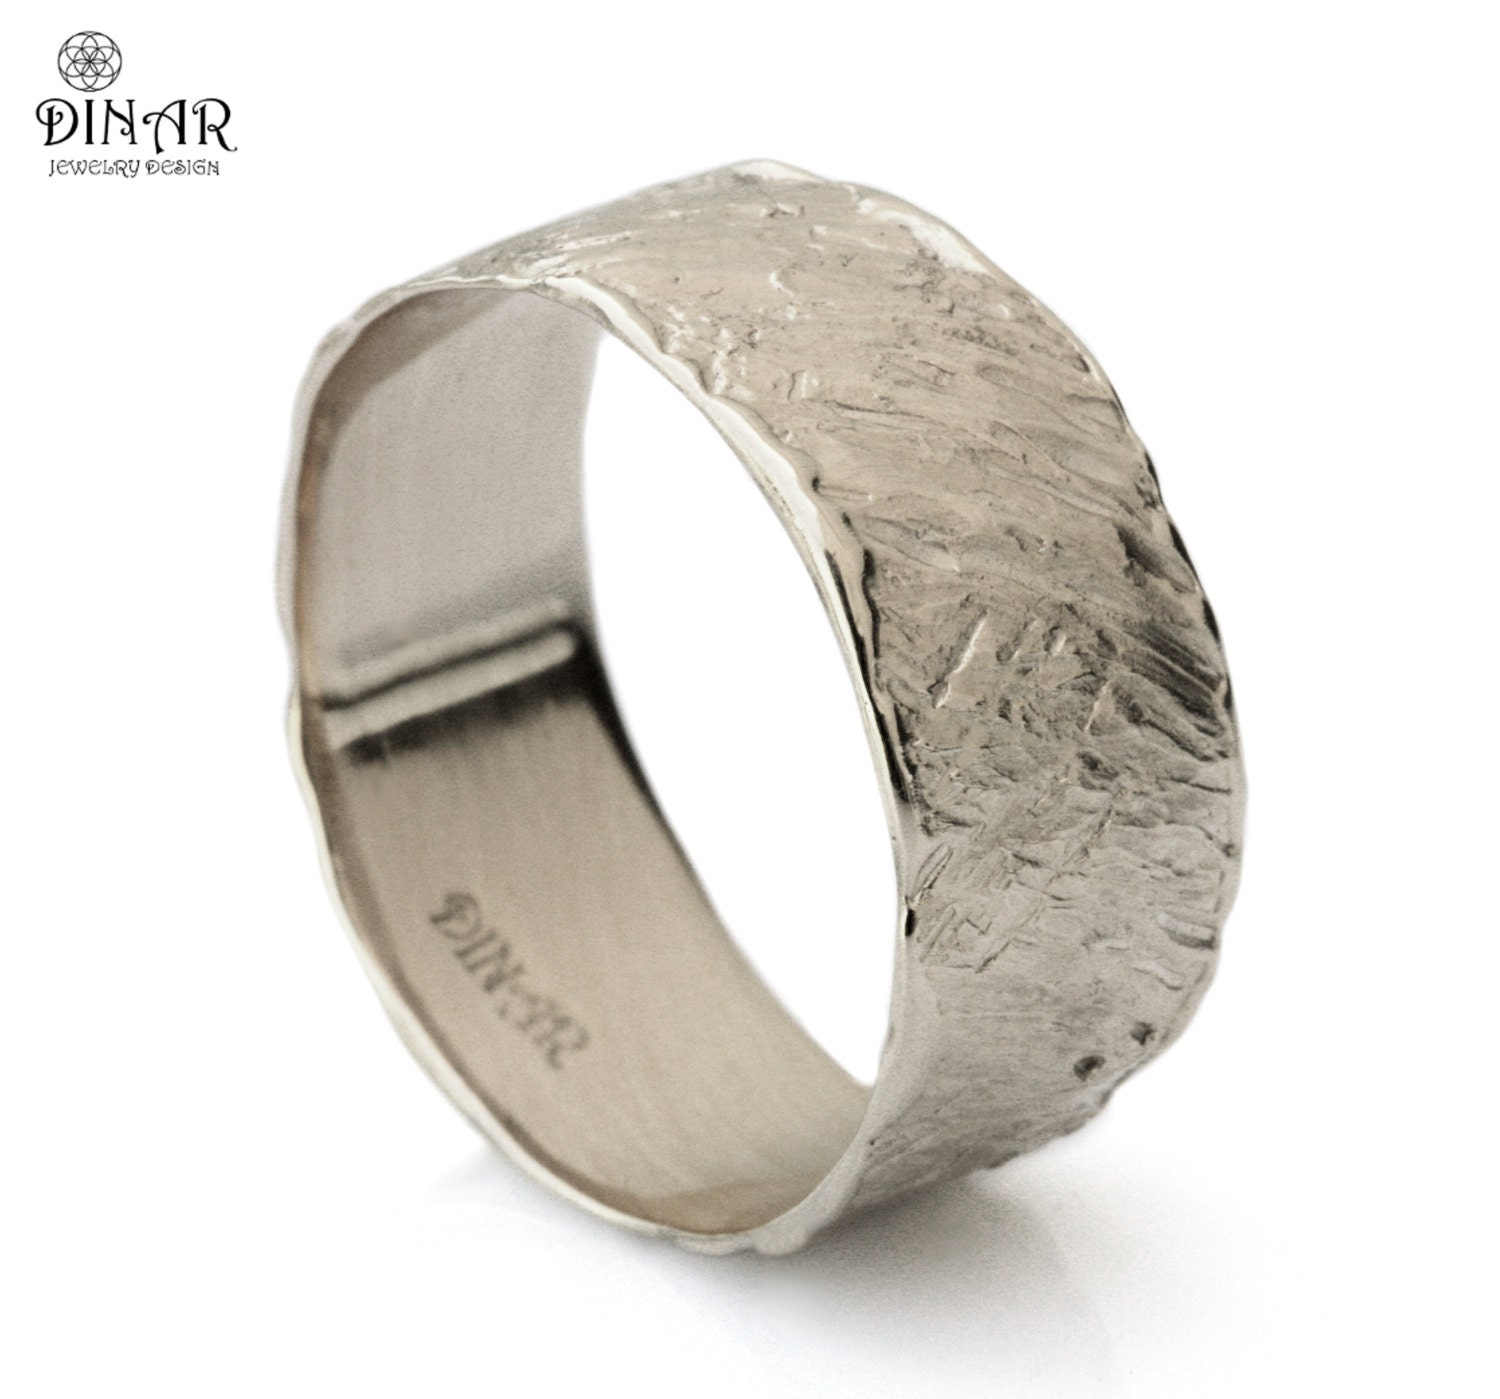 14k white Gold Hammered Wedding Band ,wide engraved wedding ring, men's gold ring ,women band, Handmade design, Israel, DINAR jewelry